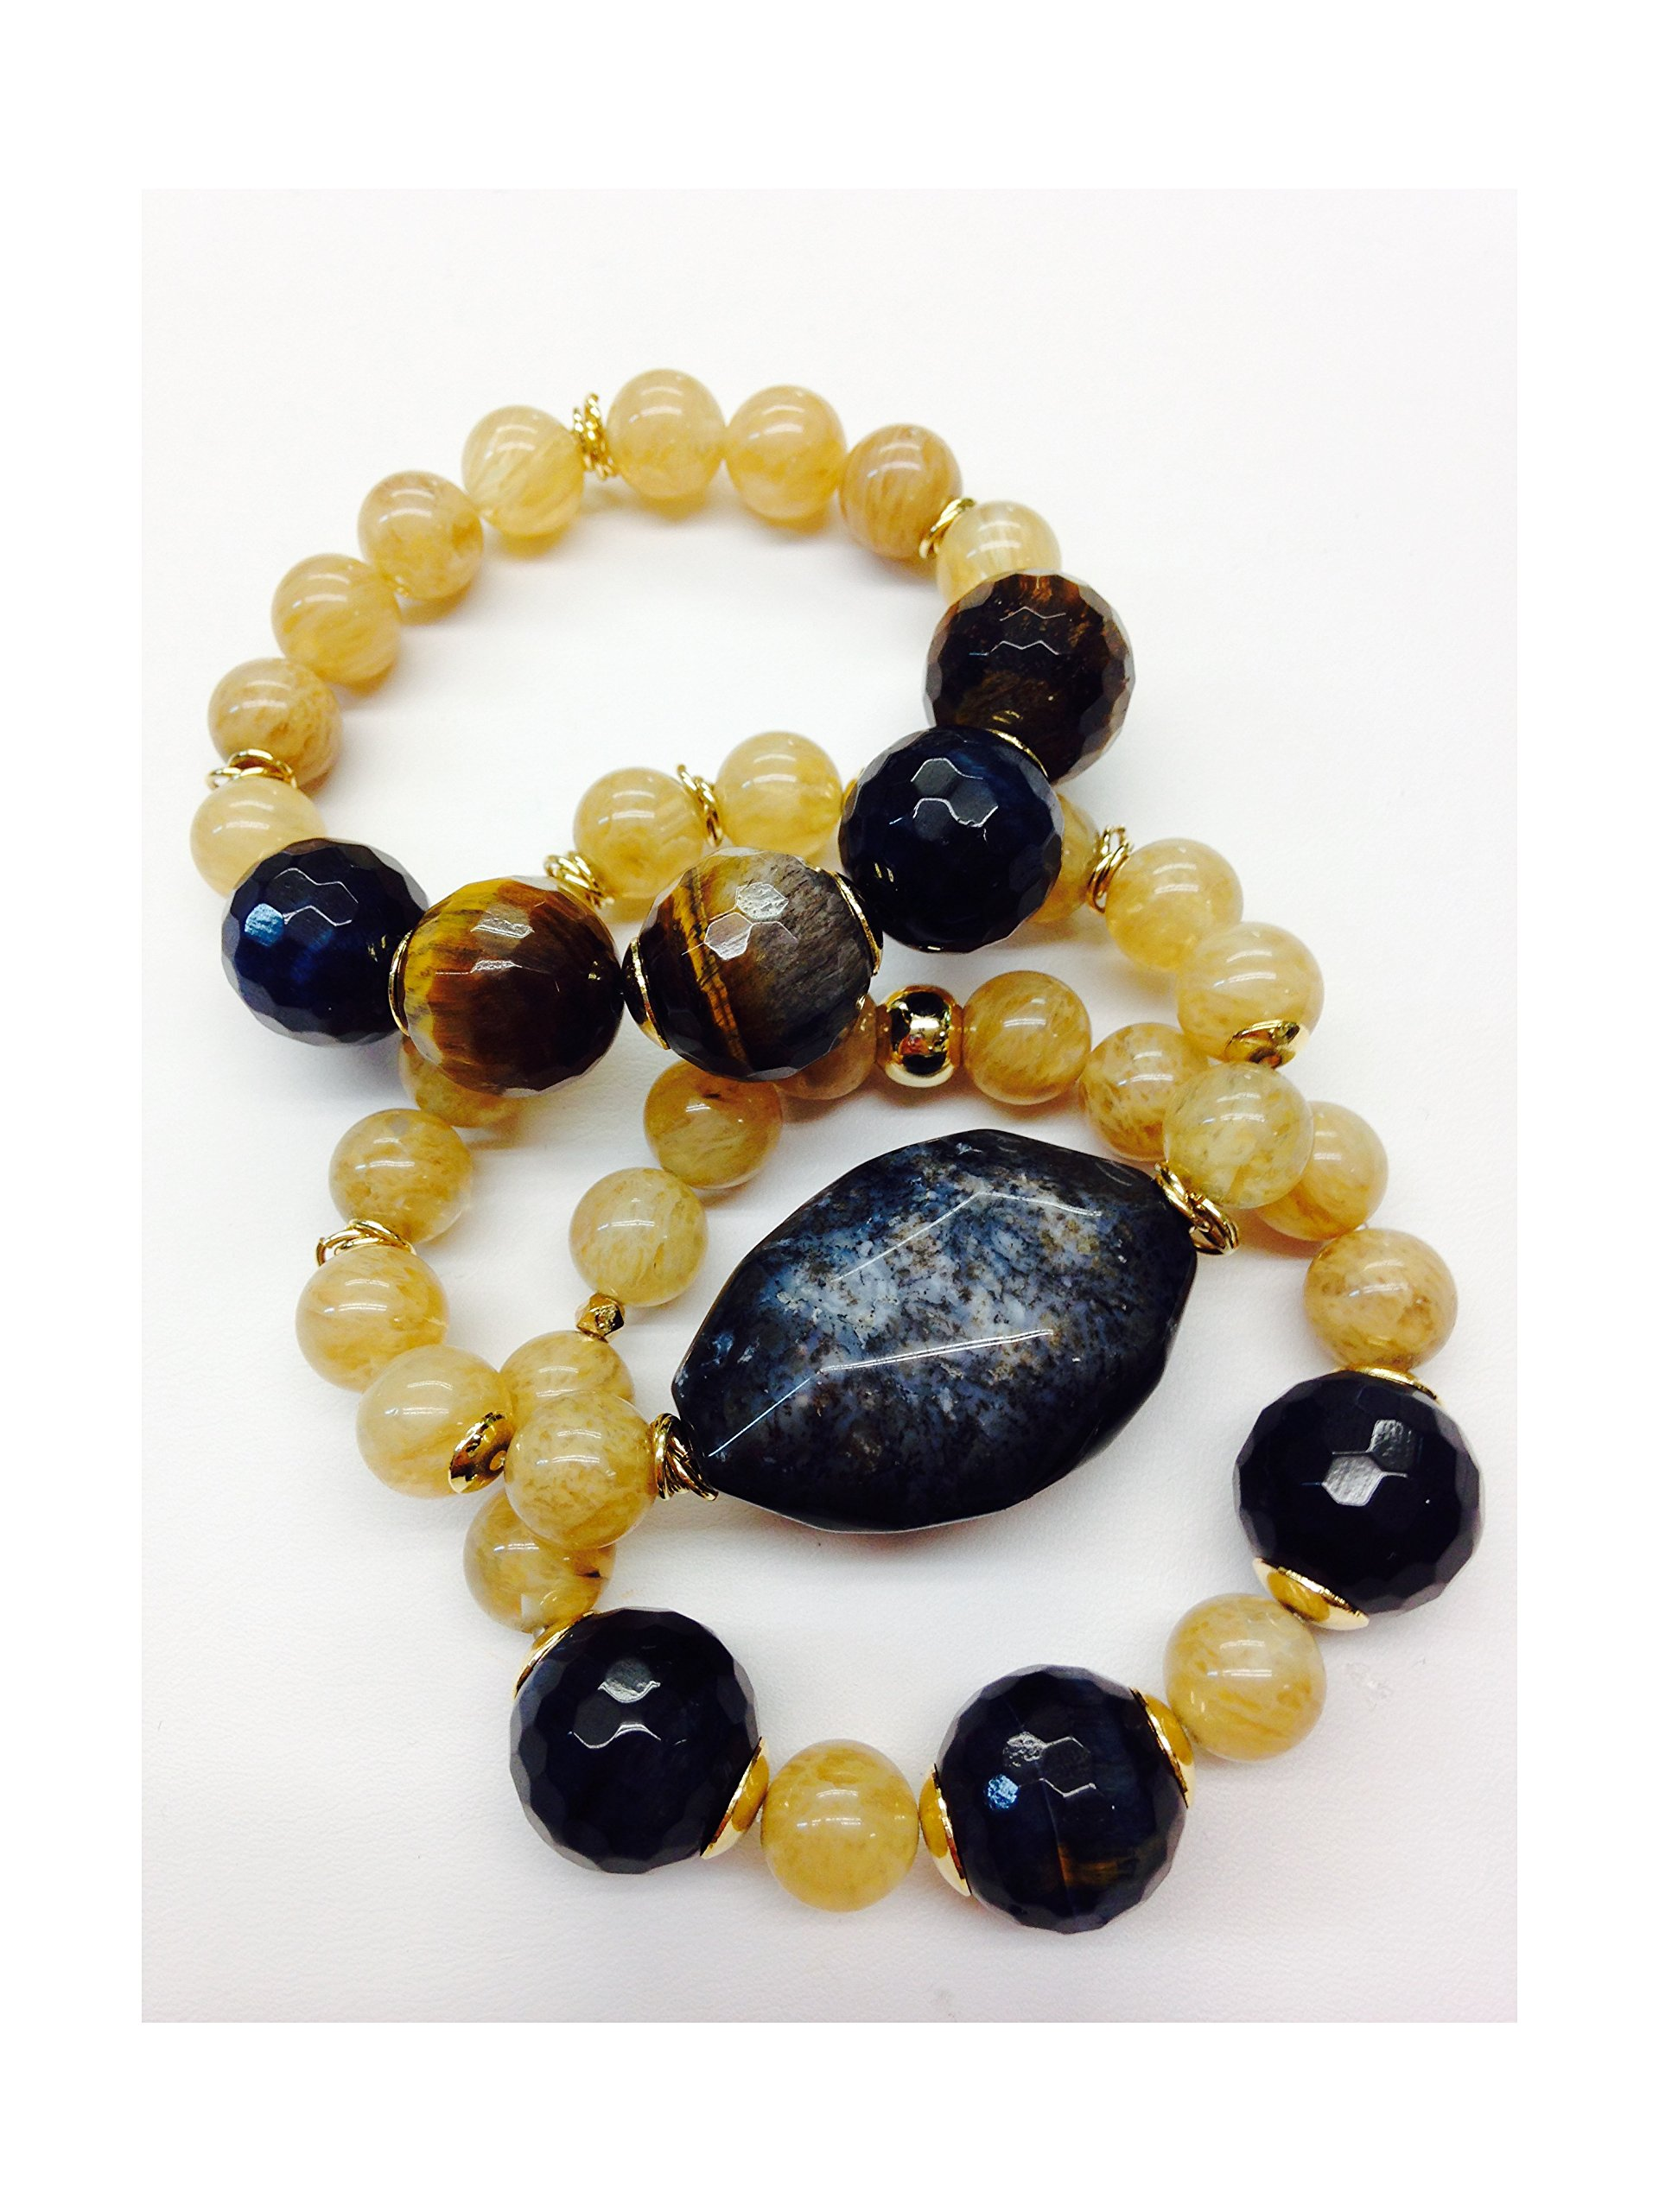 Set of 3 Handmade Bracelets - Amber Quartz, Blue Tiger Eye, Brown Tiger Eye & Exotic Jasper Natural Stones & Goldfilled Beads by Formula Moda